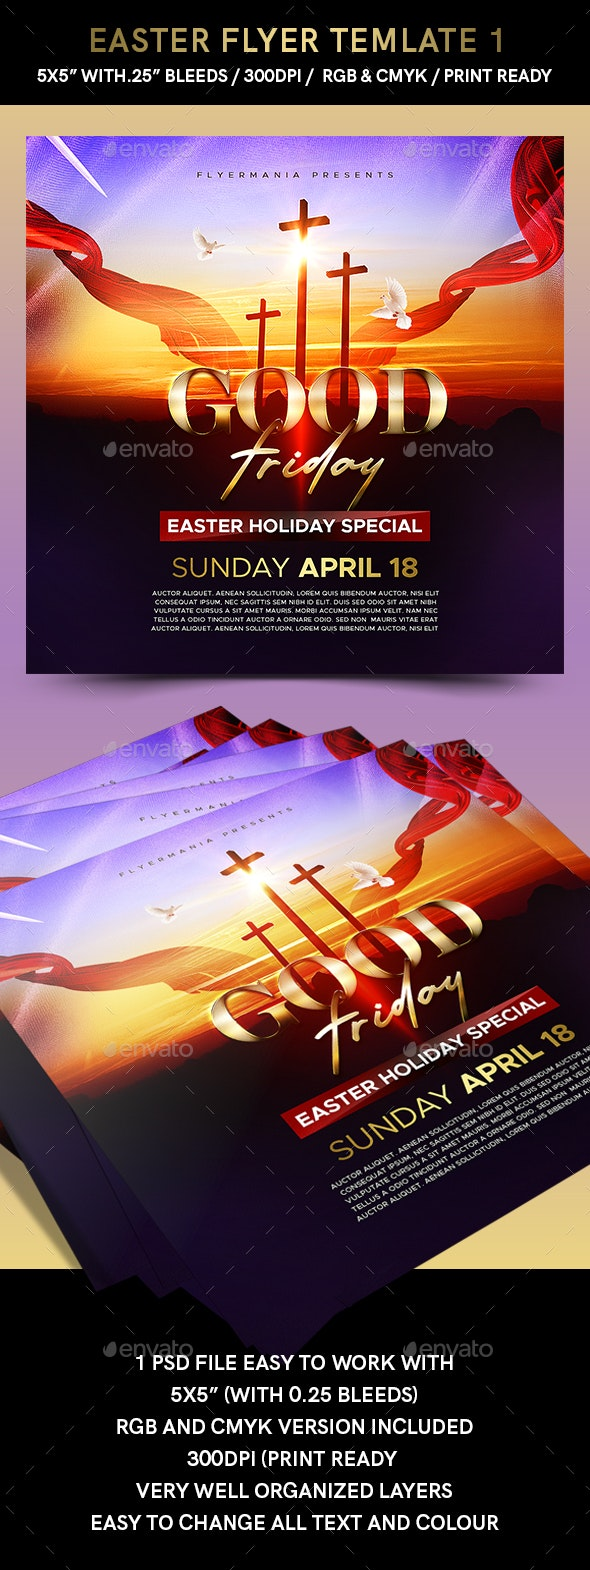 Easter Flyer Template 1 - Flyers Print Templates